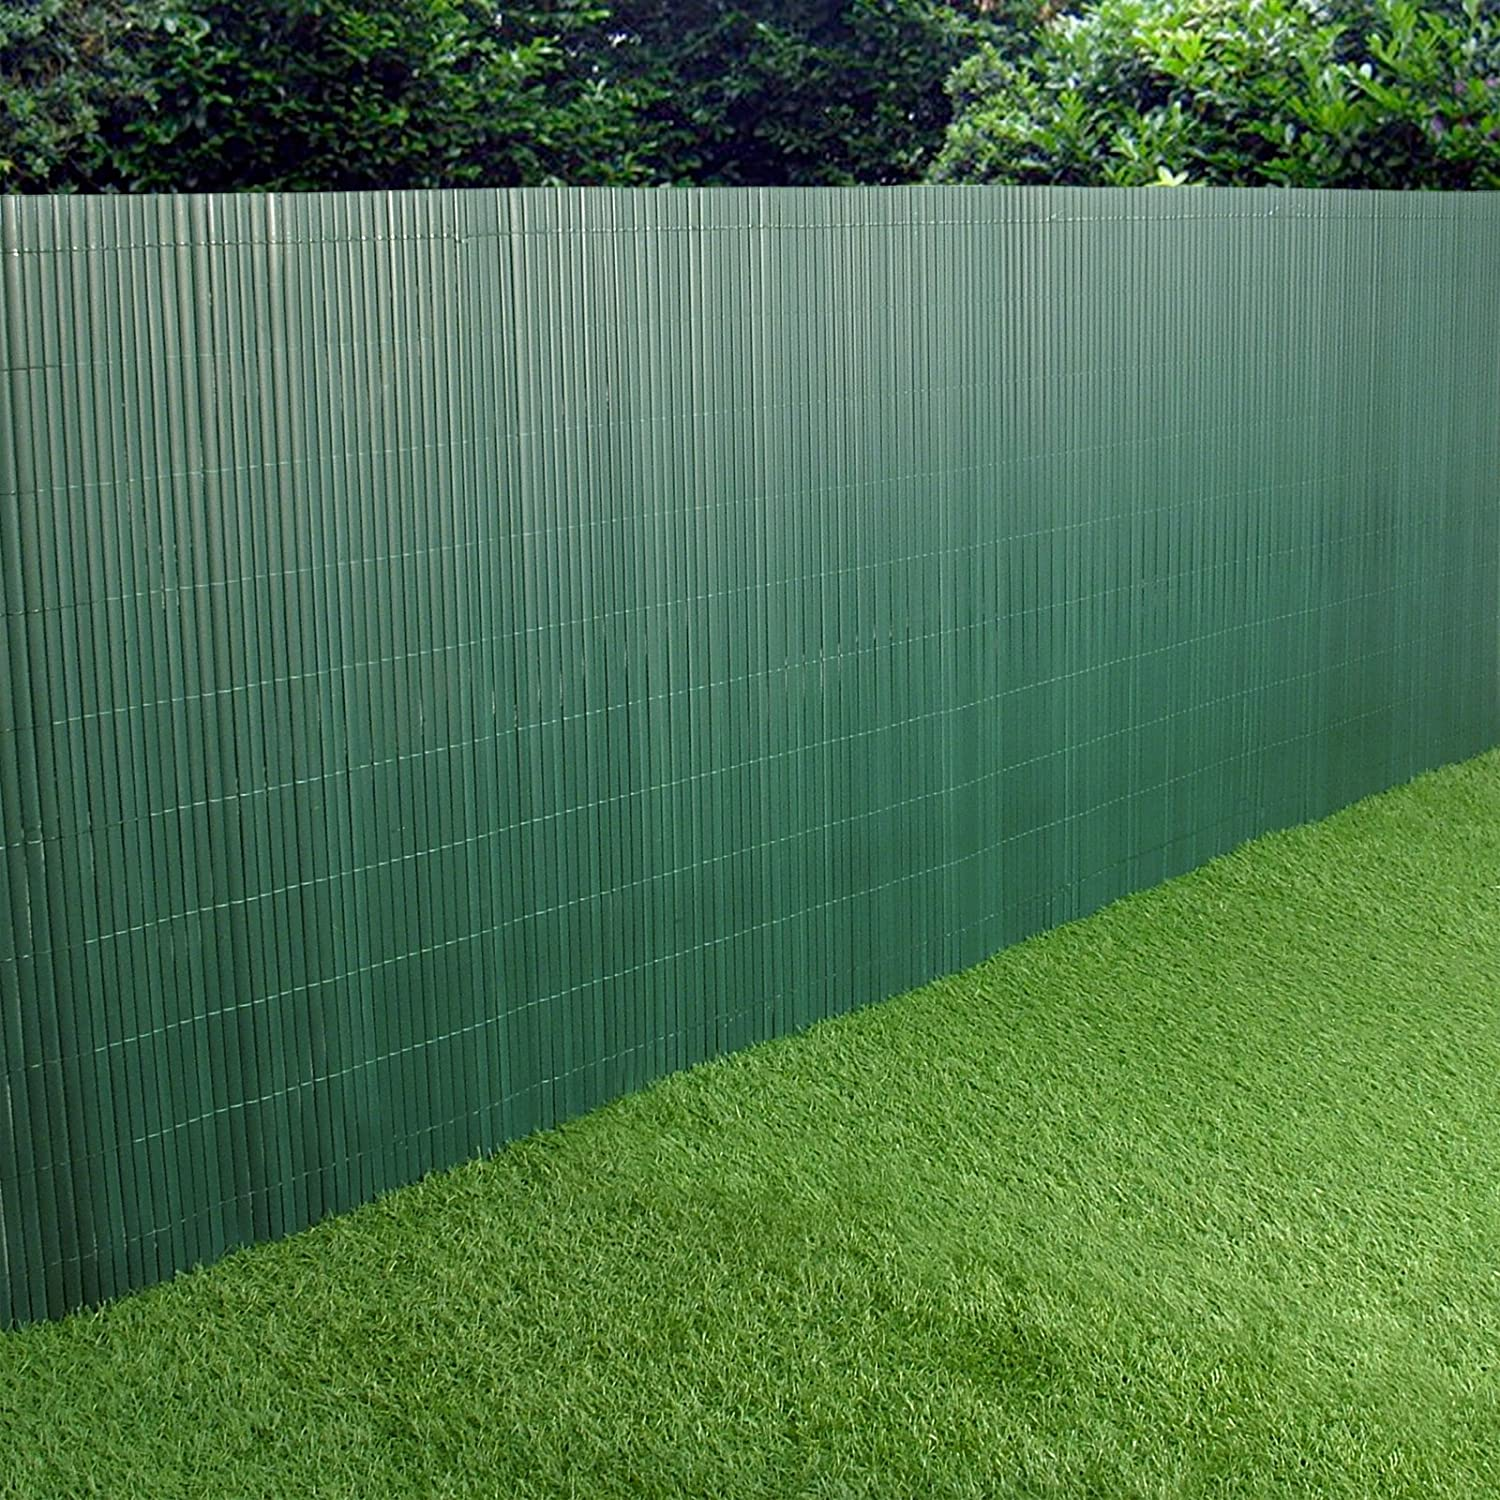 Delightful PVC Garden Fence Plastic Panel Screen Double Faced Green 3m Long 1m Tall:  Amazon.co.uk: Garden U0026 Outdoors